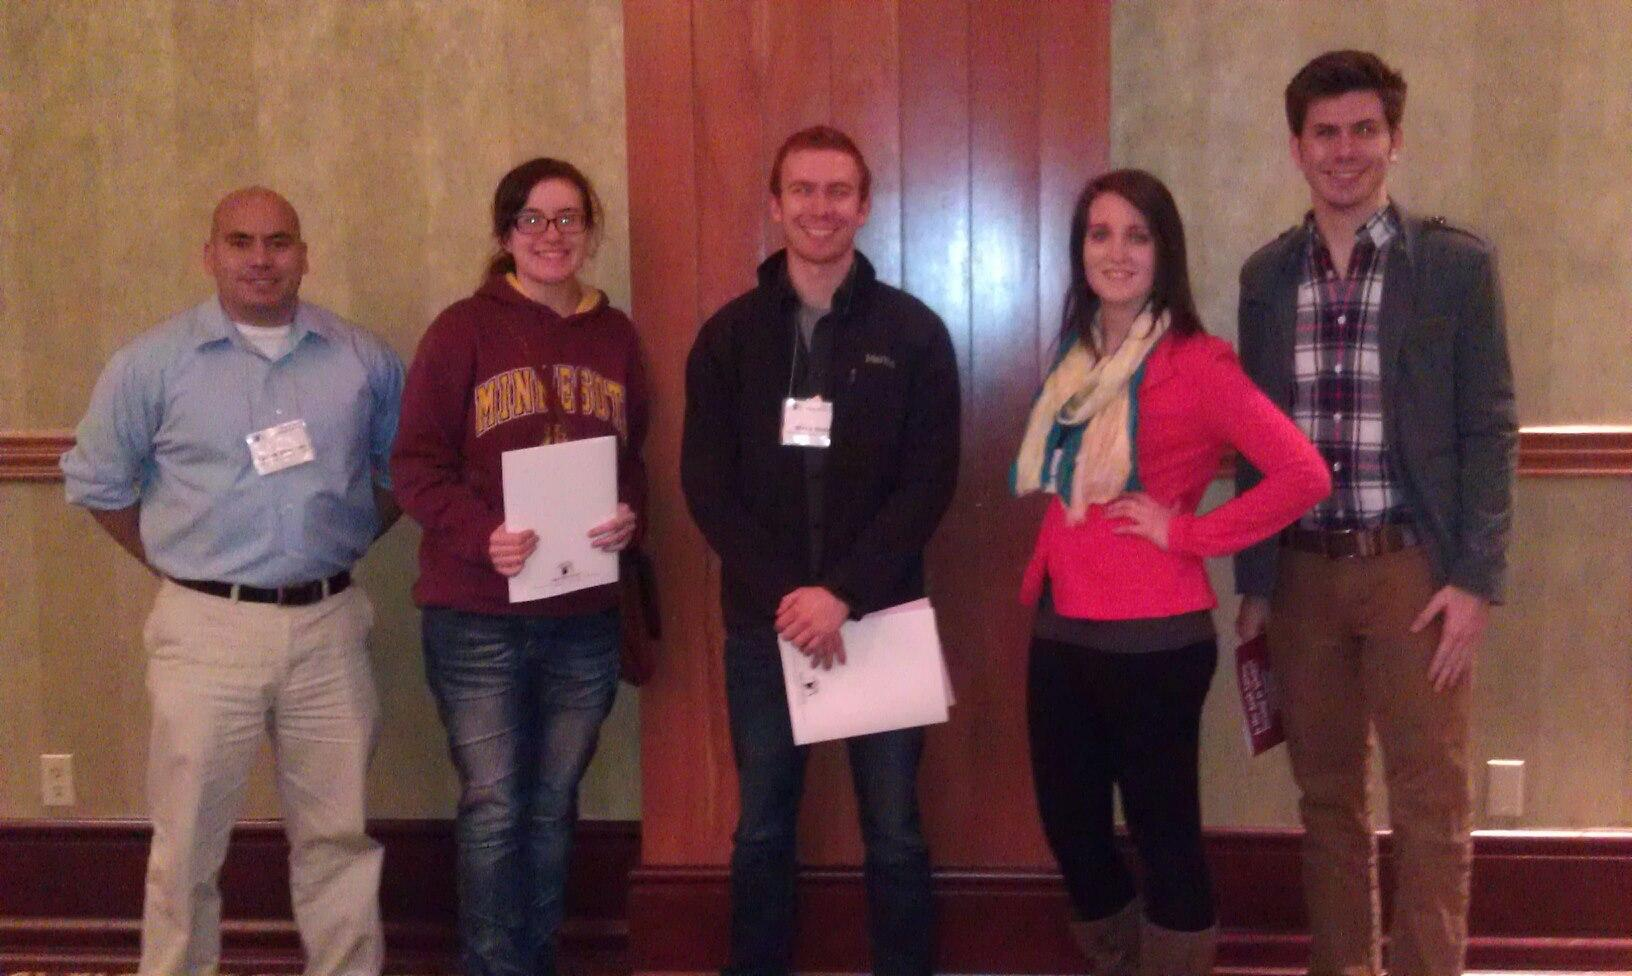 The five students who attended  the PAWAC are (from left) Carlos Alvarado, Ali Braboy, Blake Slutz, Marissa Mackenzie, and Max Halm.